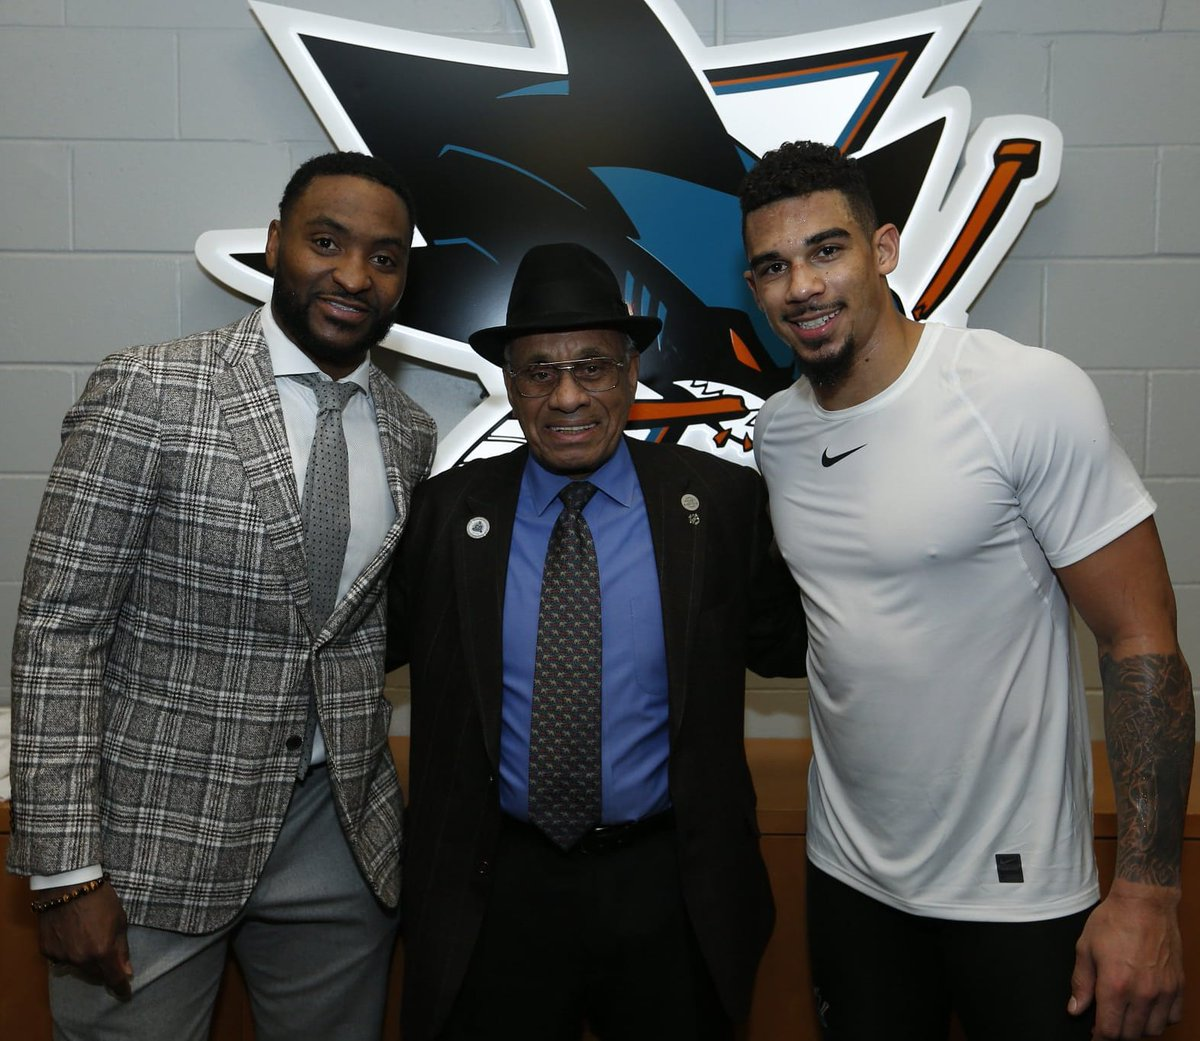 Feb. 27, 2018 - #SJSharks forwards Joel Ward and Evander Kane pose for a photo with NHL pioneer Willie O'Ree following the Sharks' 5-2 win over EDM at the Shark Tank. #BHM   #BlackHistoryMonth   📸 Sharks Twitter